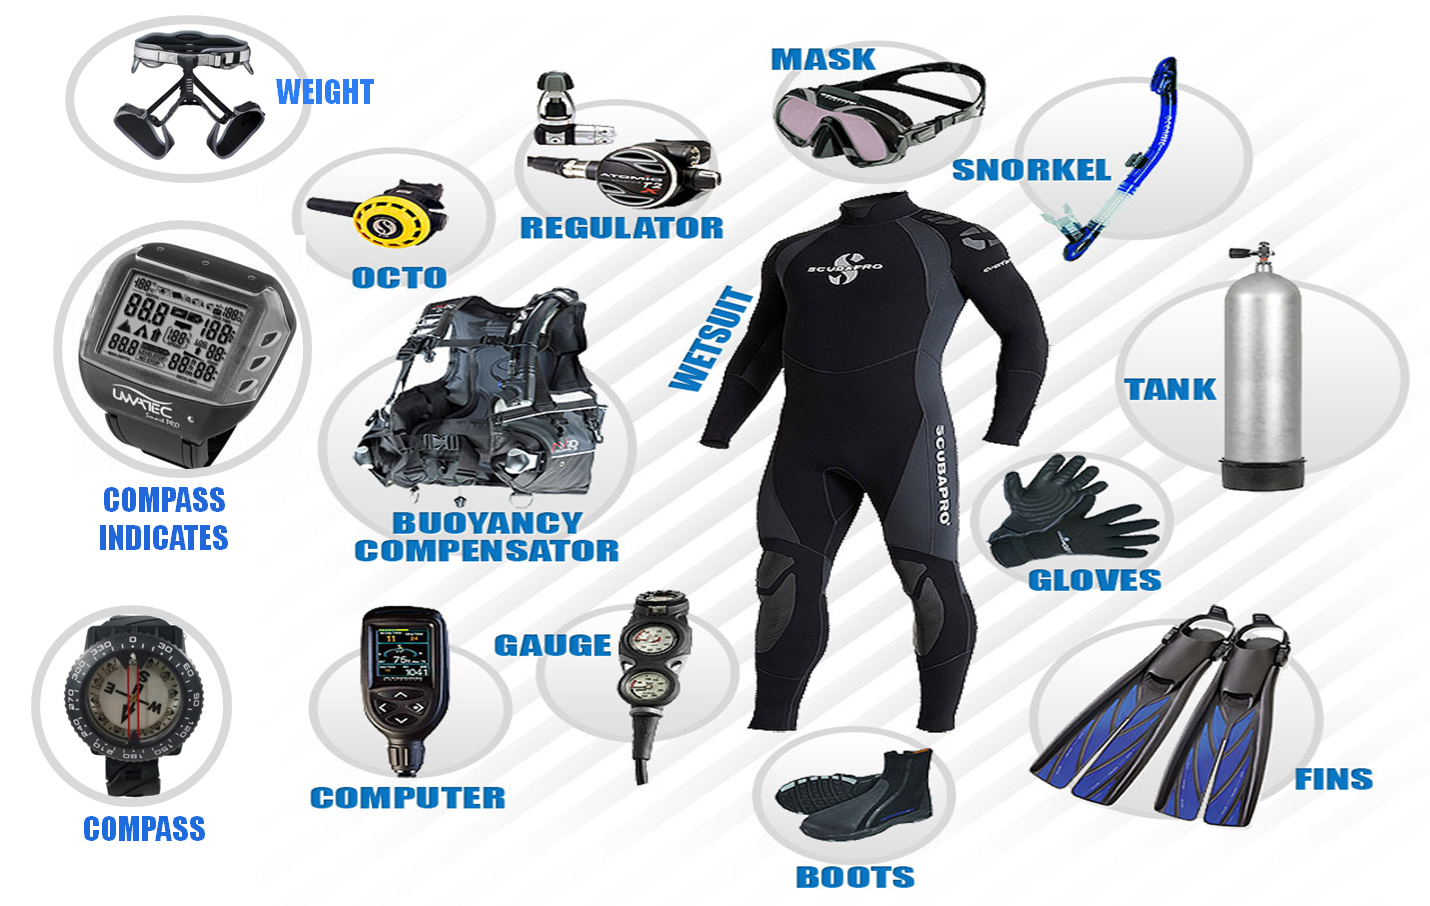 This Is Just Some Of The Equiptment You Need To Be Wearing